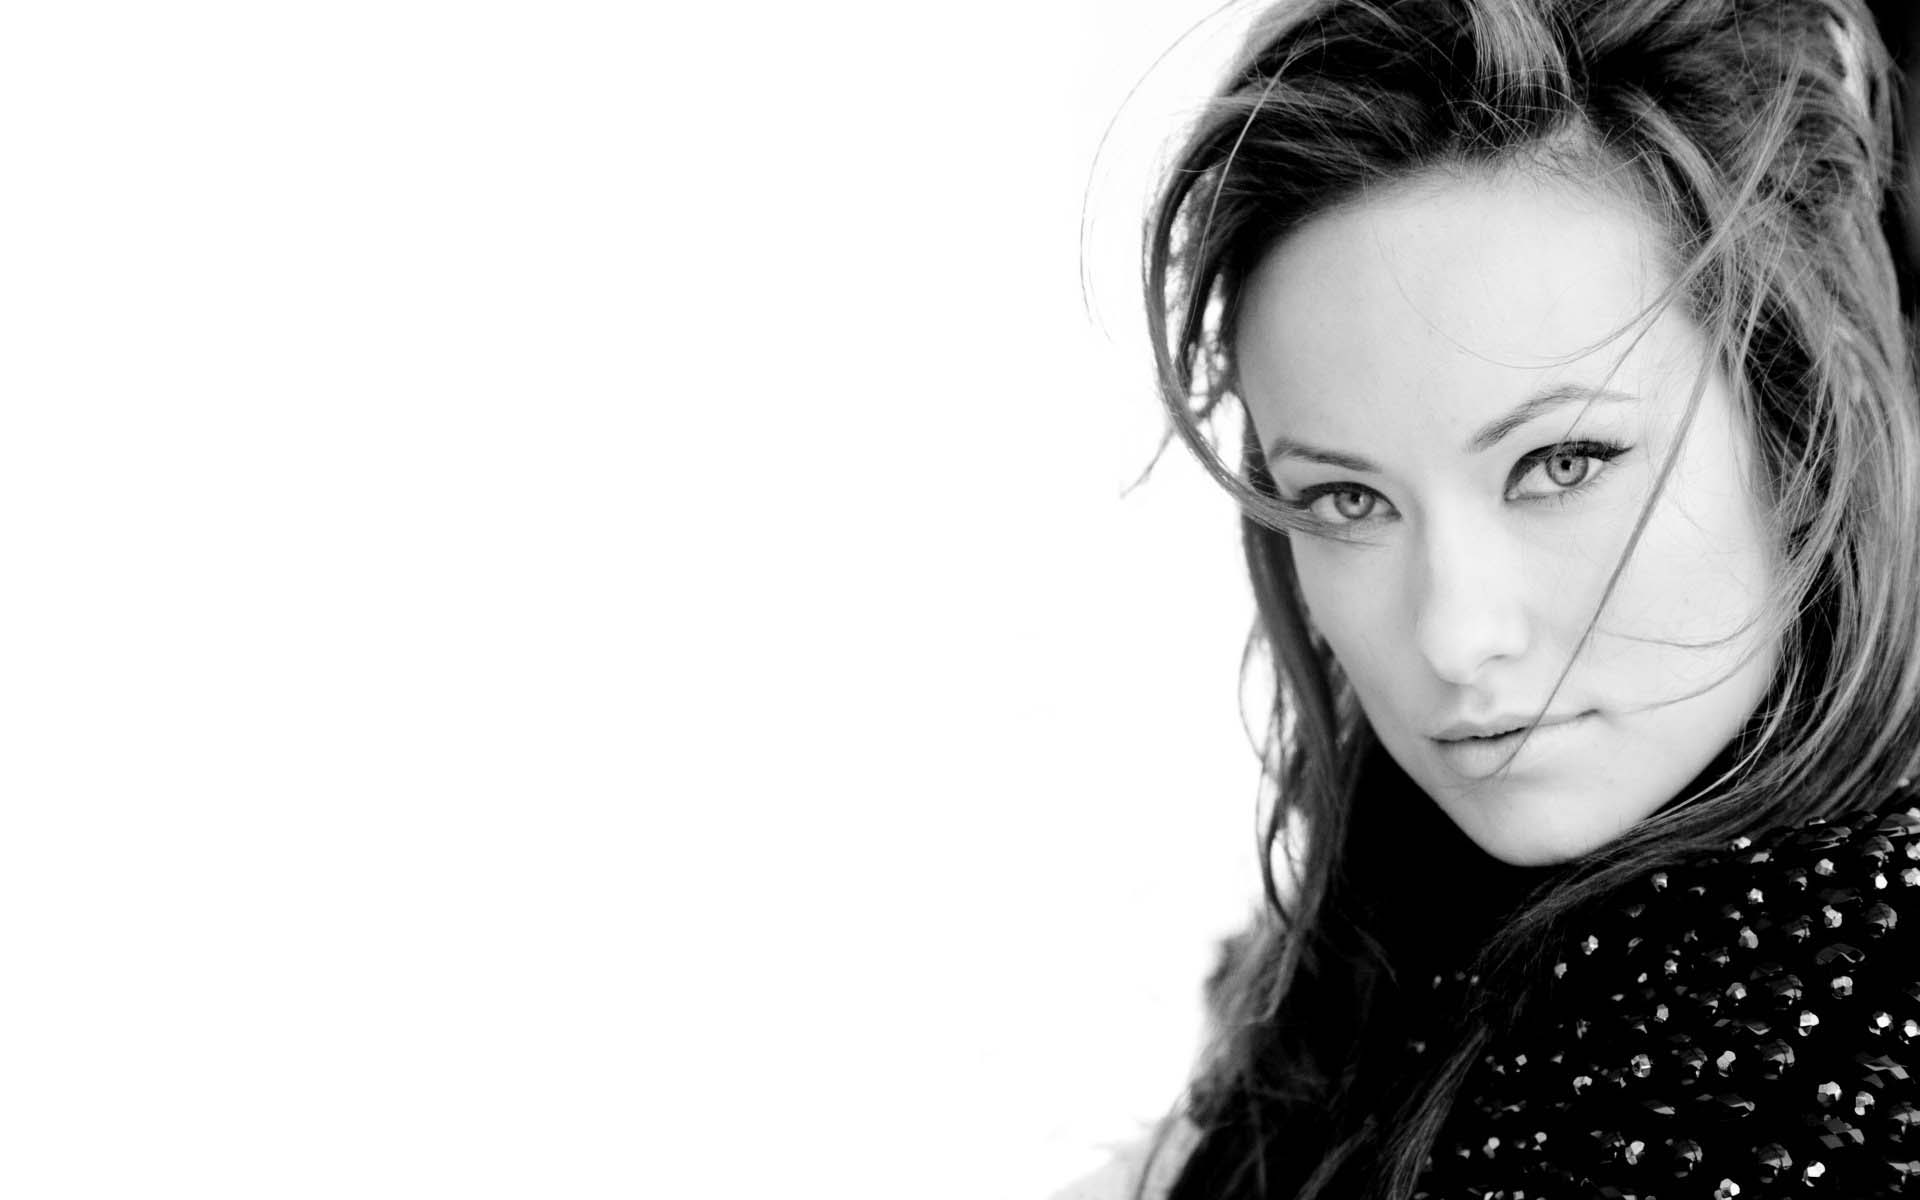 free olivia wilde height definition image